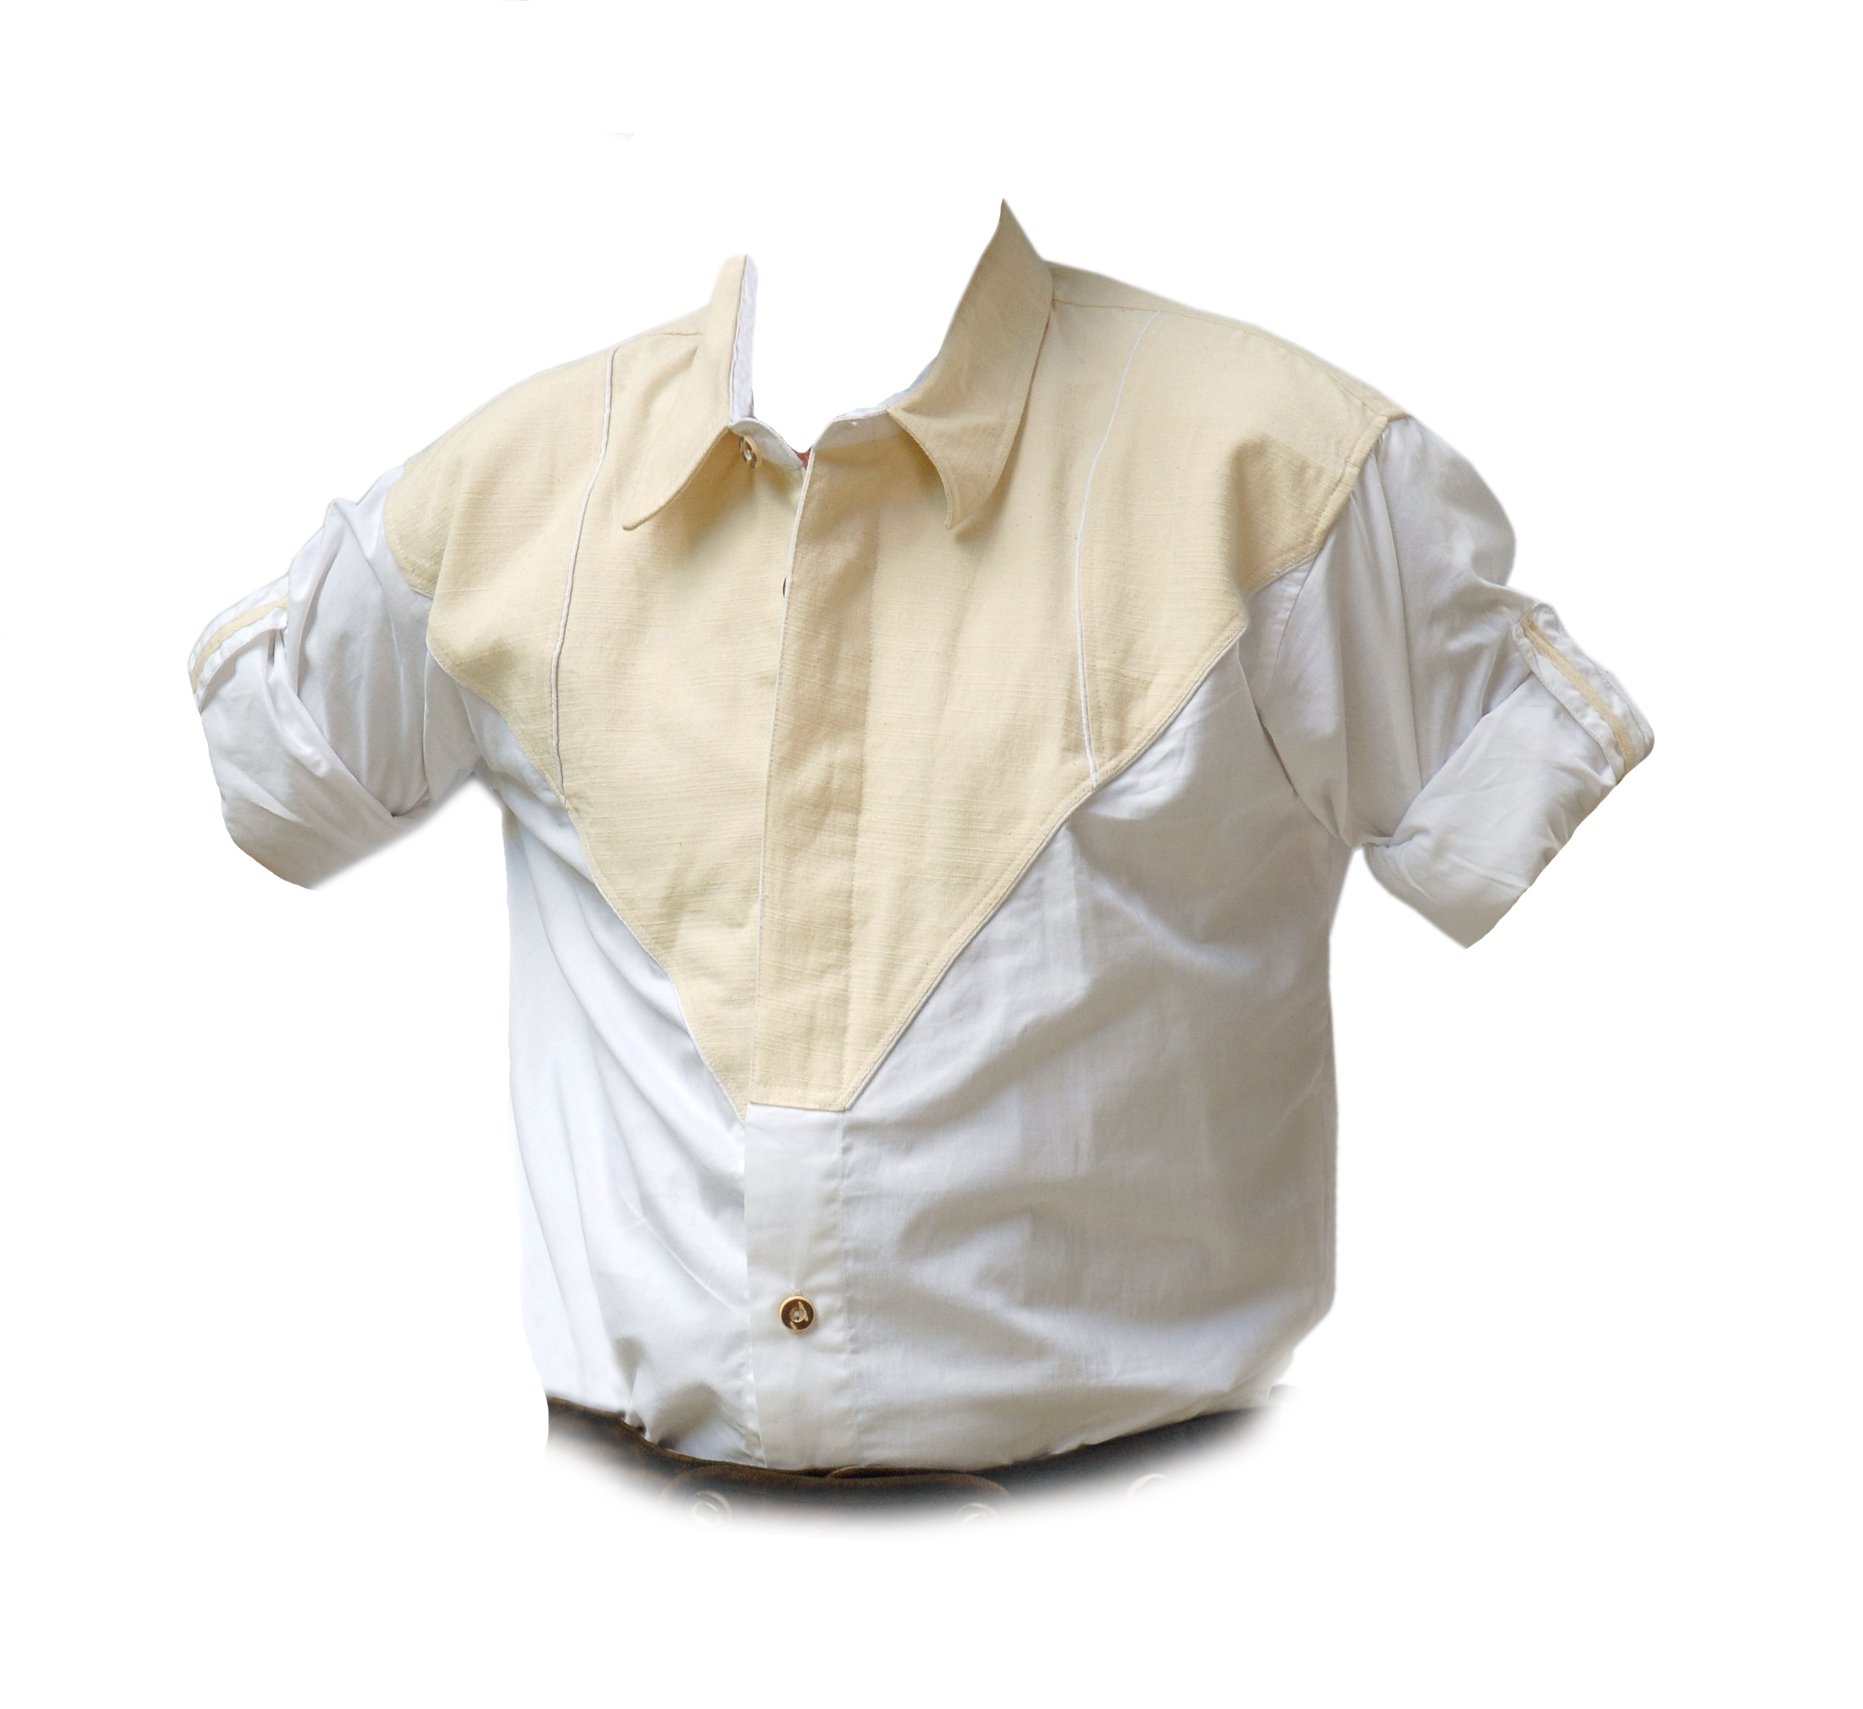 PLAIN WHITE & SKIN SHIRTS